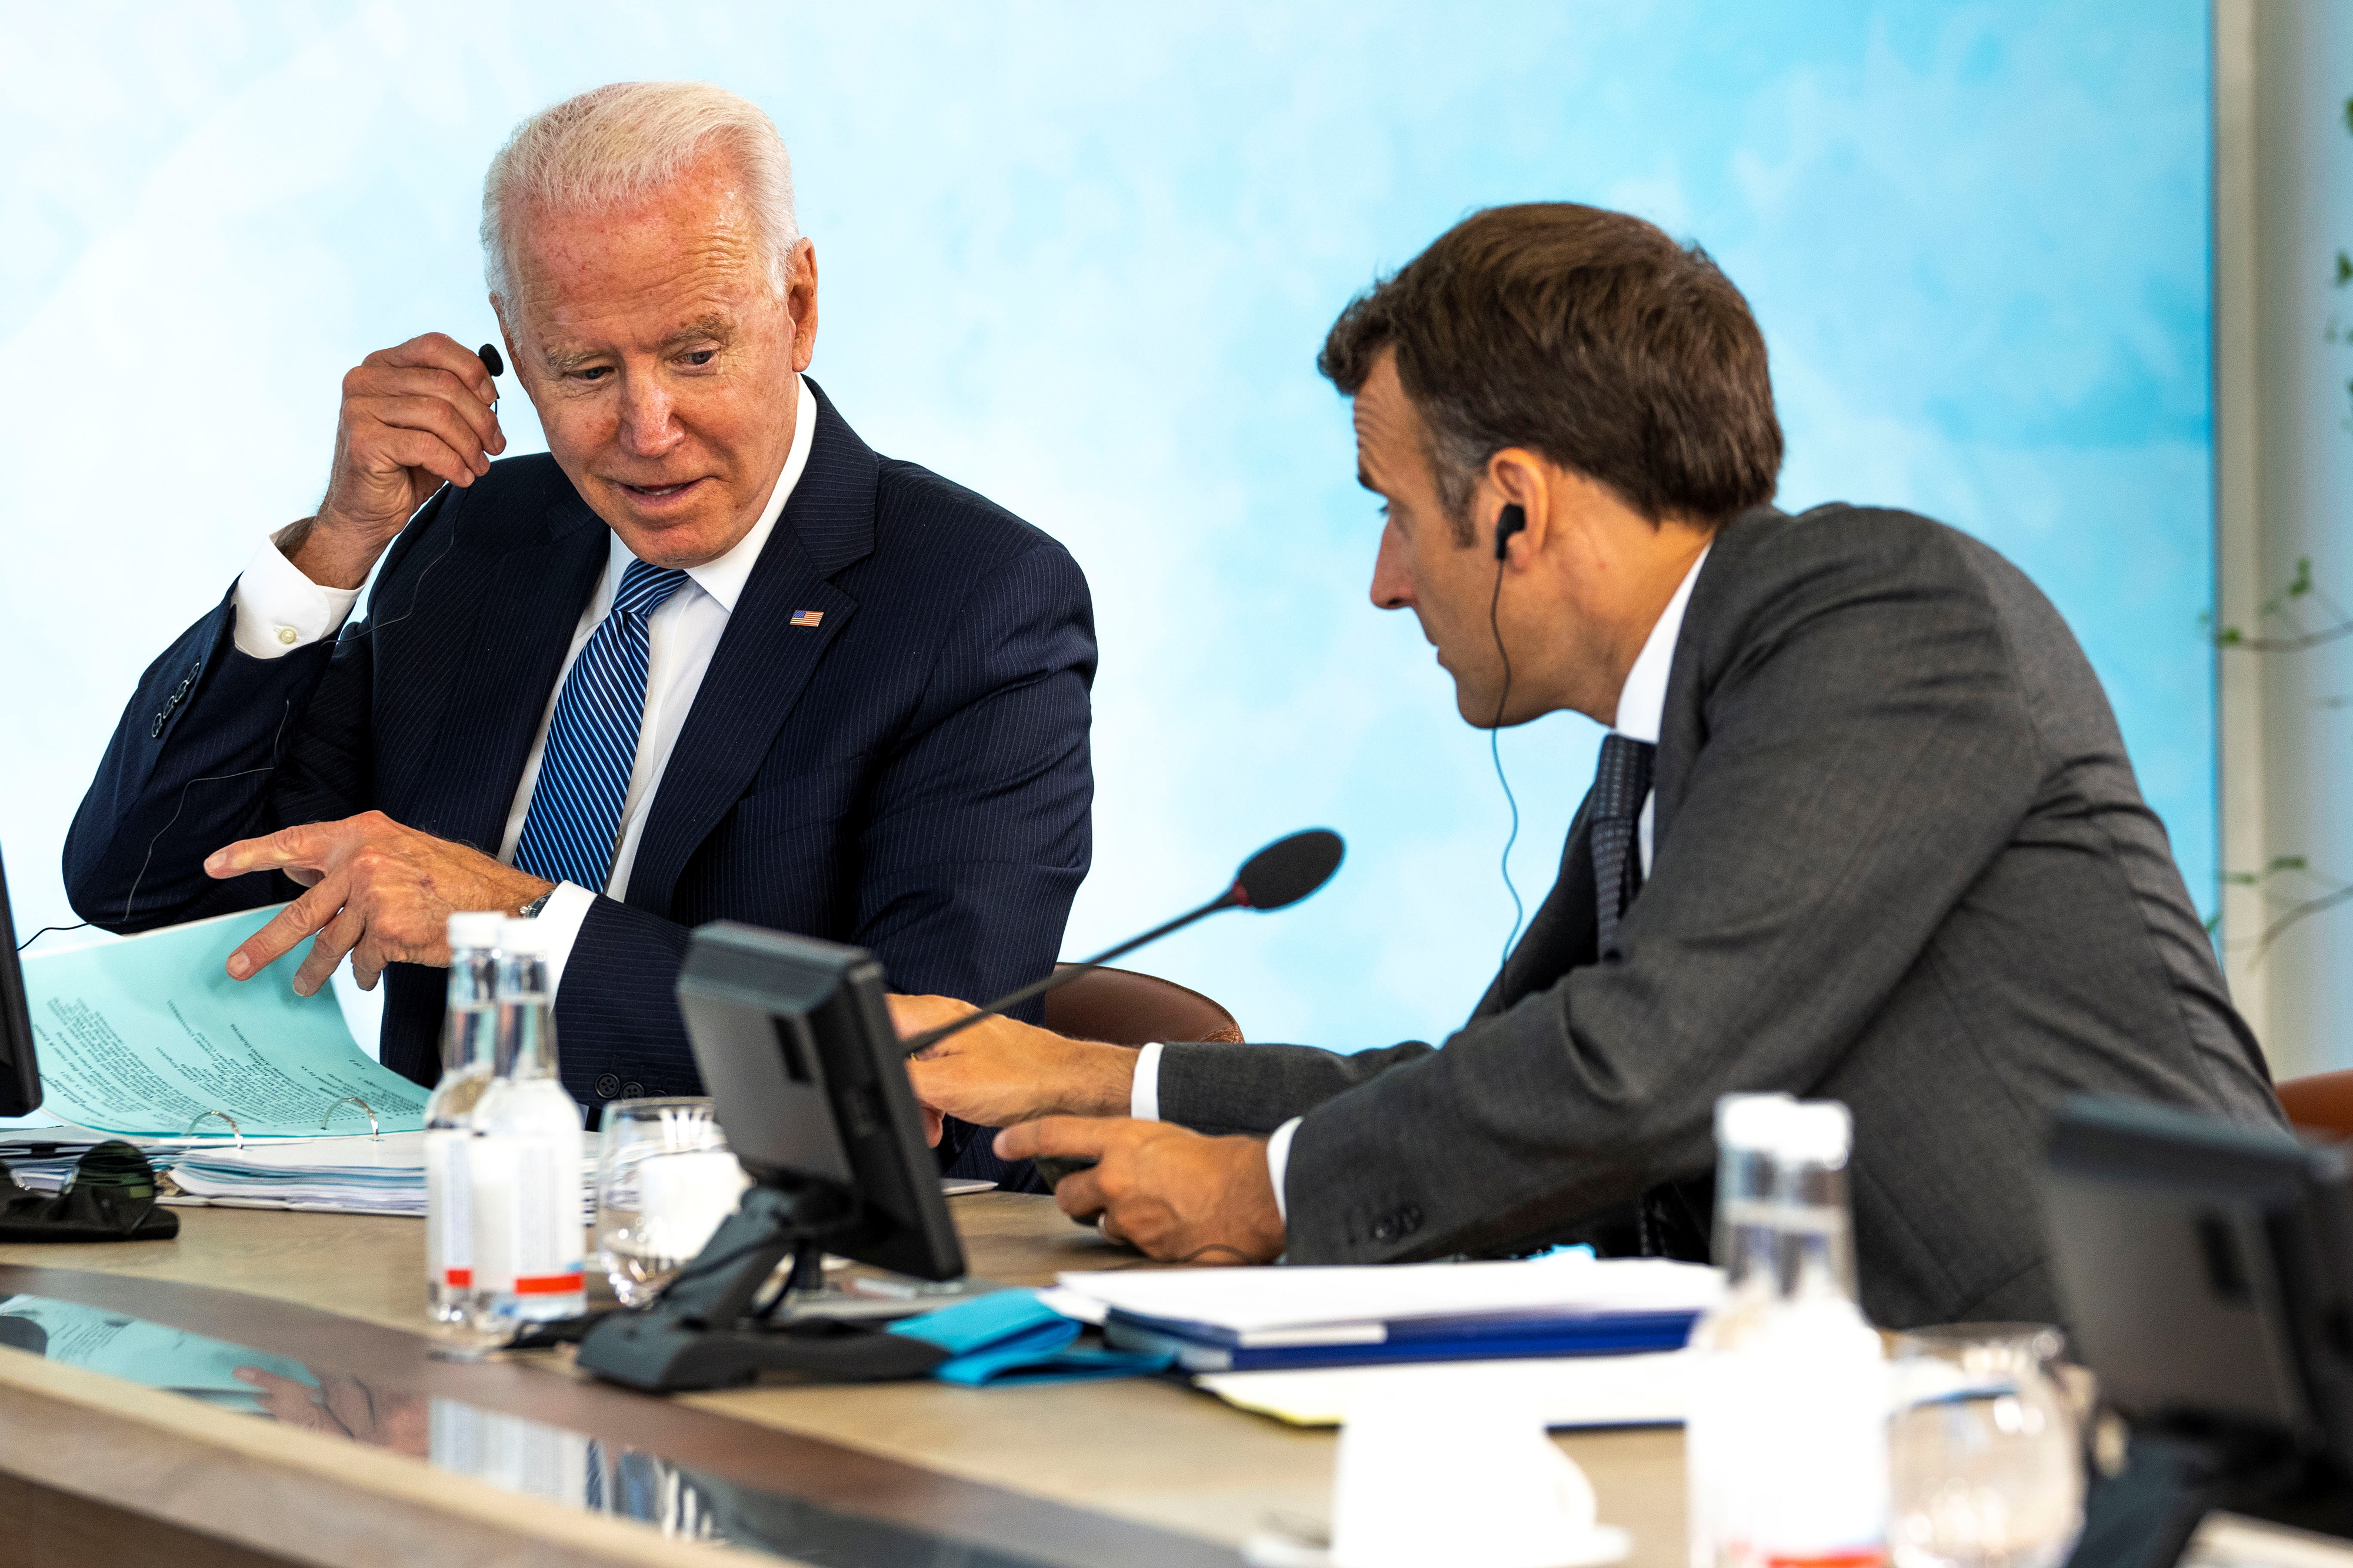 U.S. President Joe Biden talks with French President Emmanuel Macron at the final session of the G7 summit in Carbis Bay, Cornwall in Britain, June 13, 2021.  Doug Mills/Pool via REUTERS